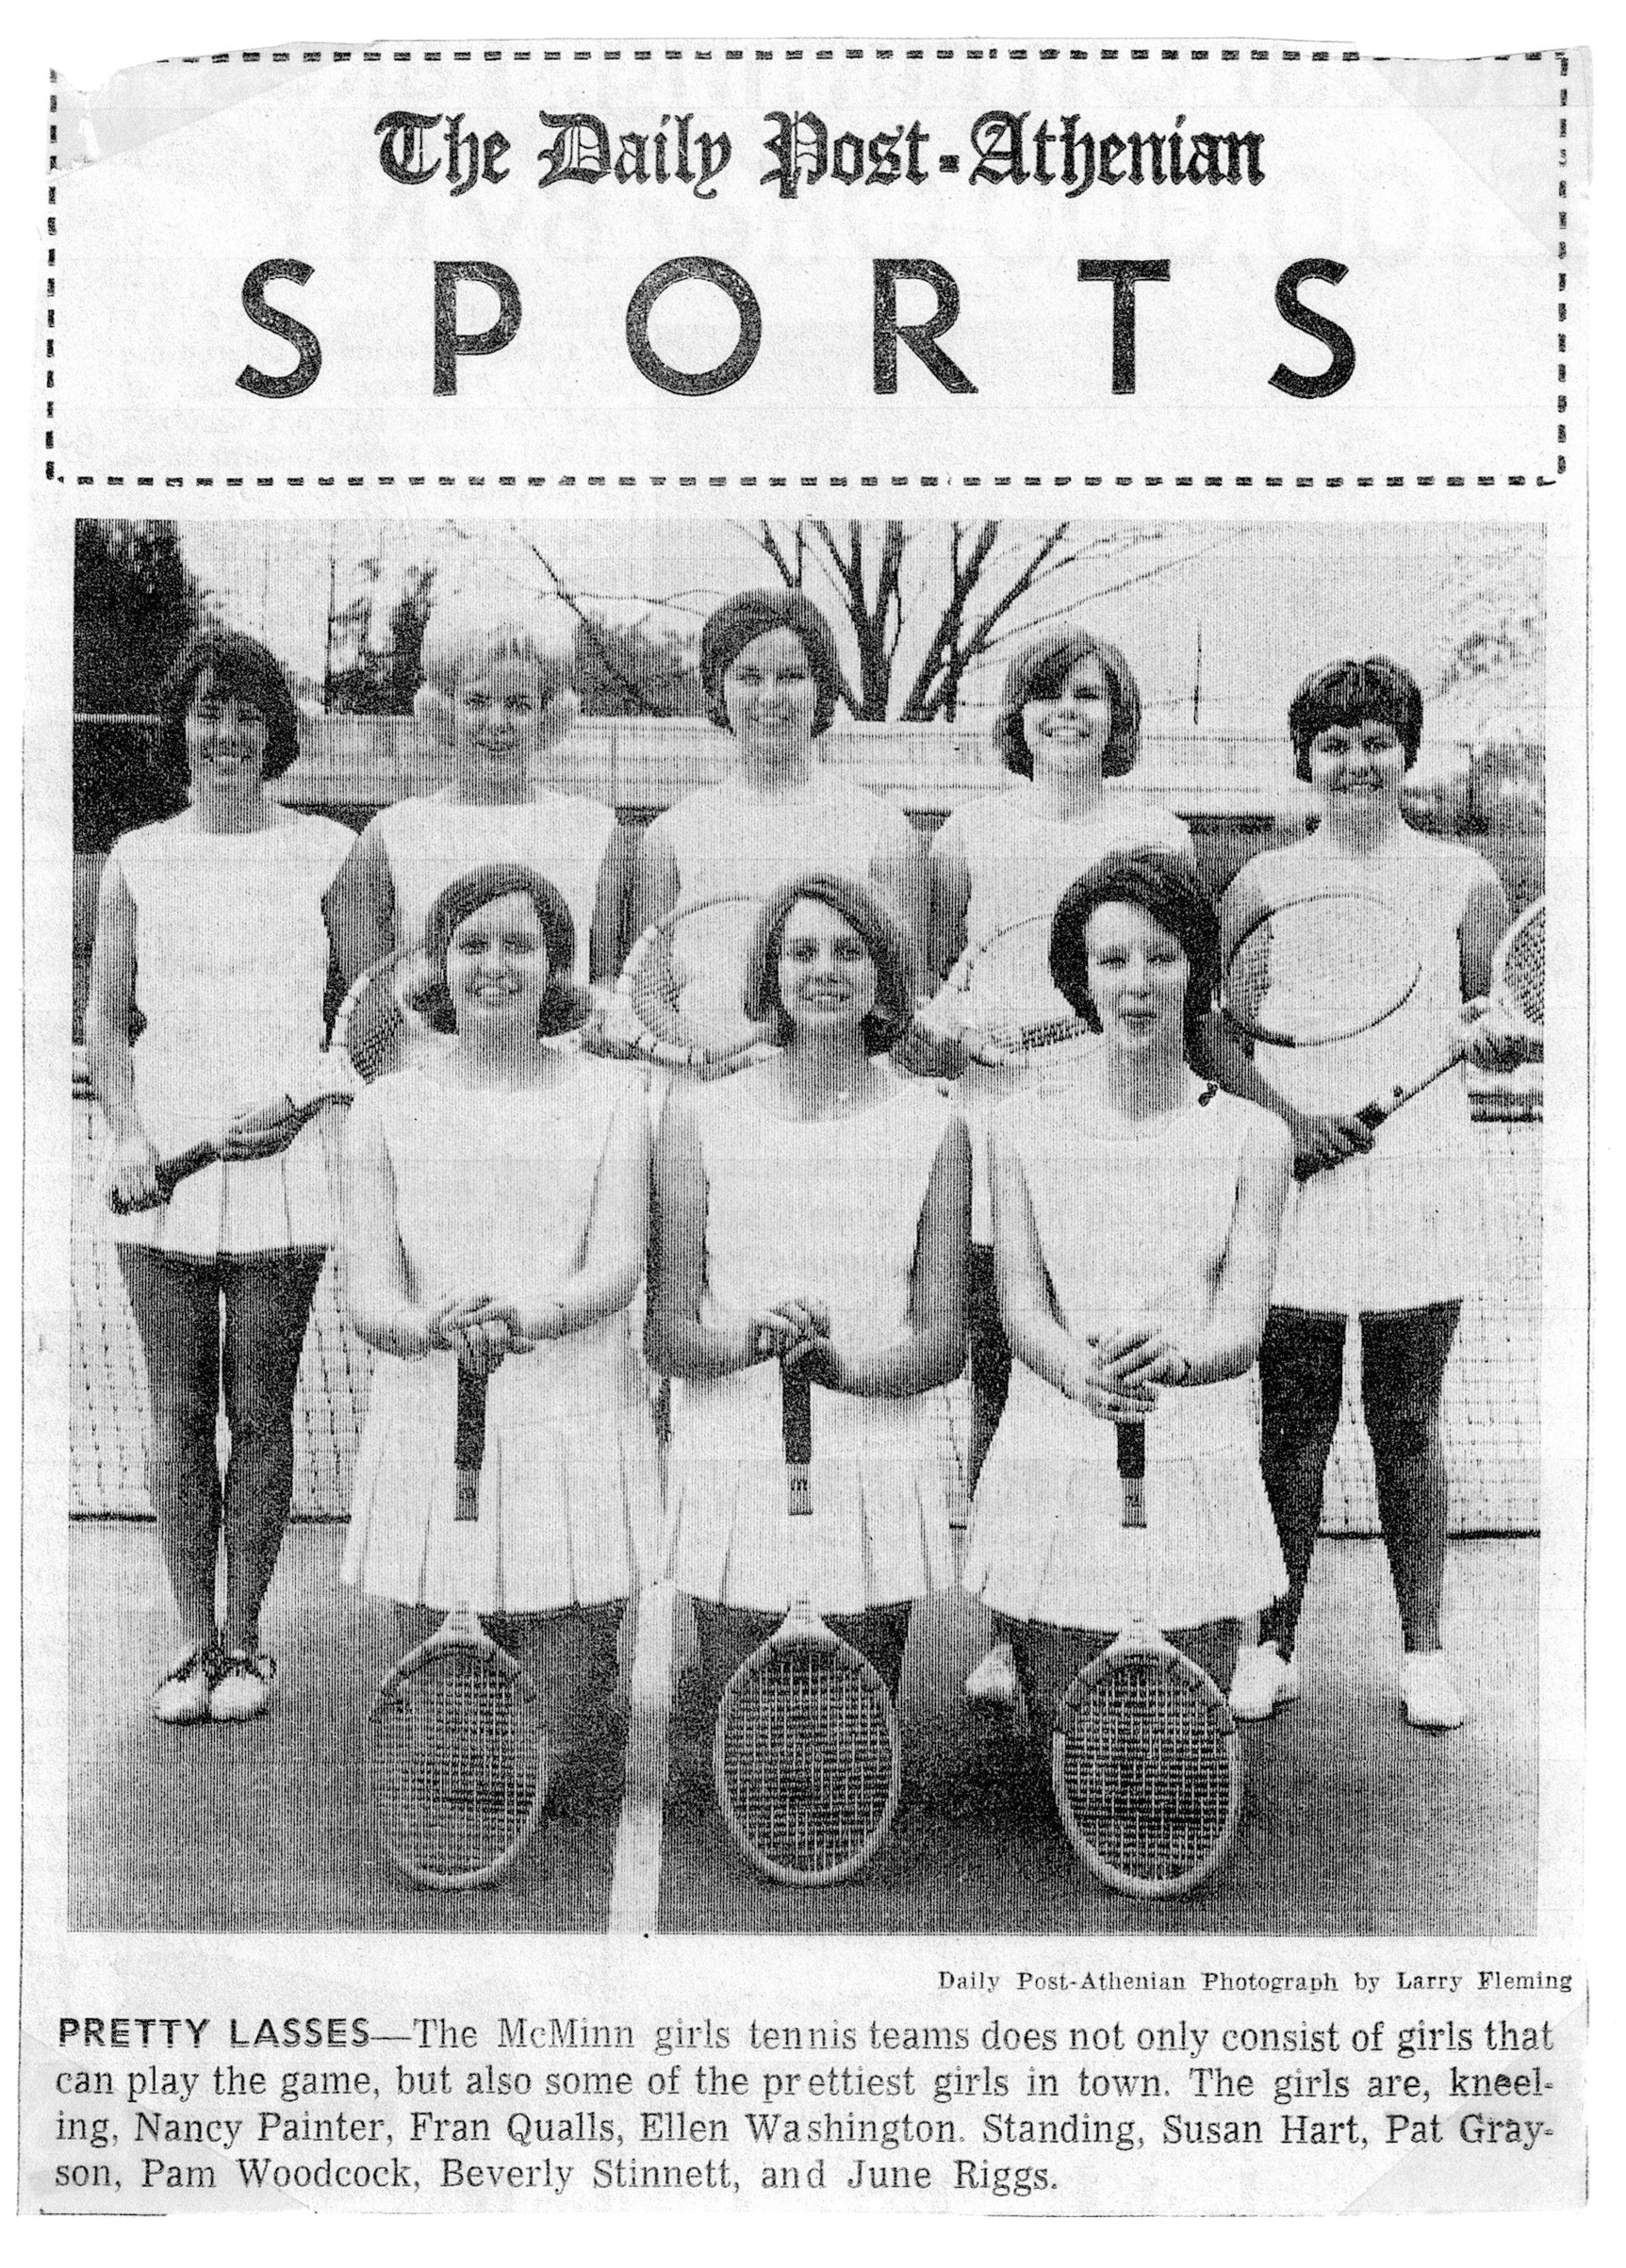 The McMinn County girls tennis team included Nancy Painter Casson, kneeling front left.